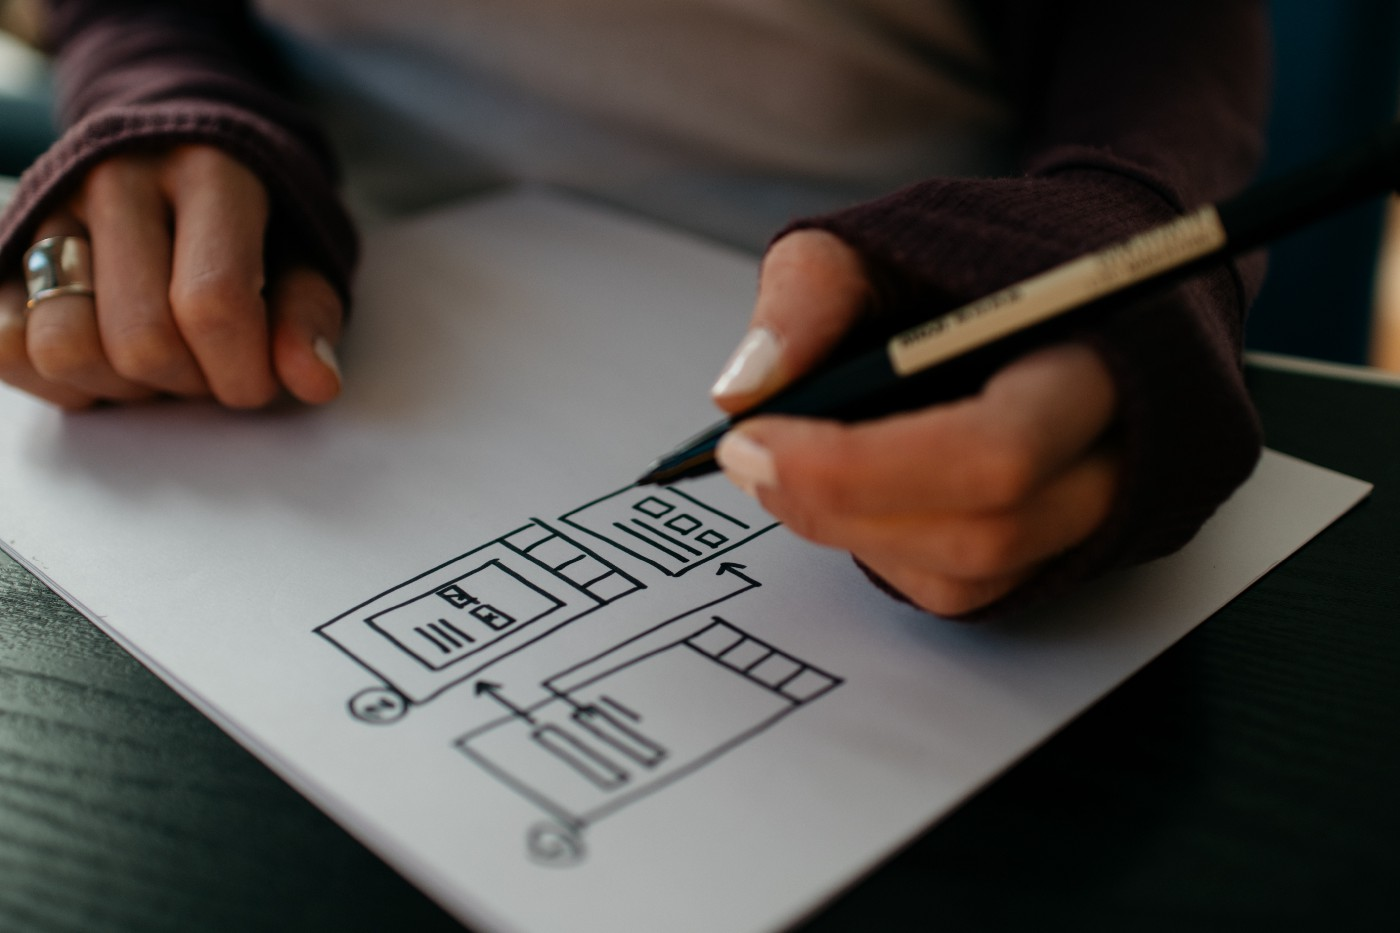 Hand holding a marker drawing a wireframe